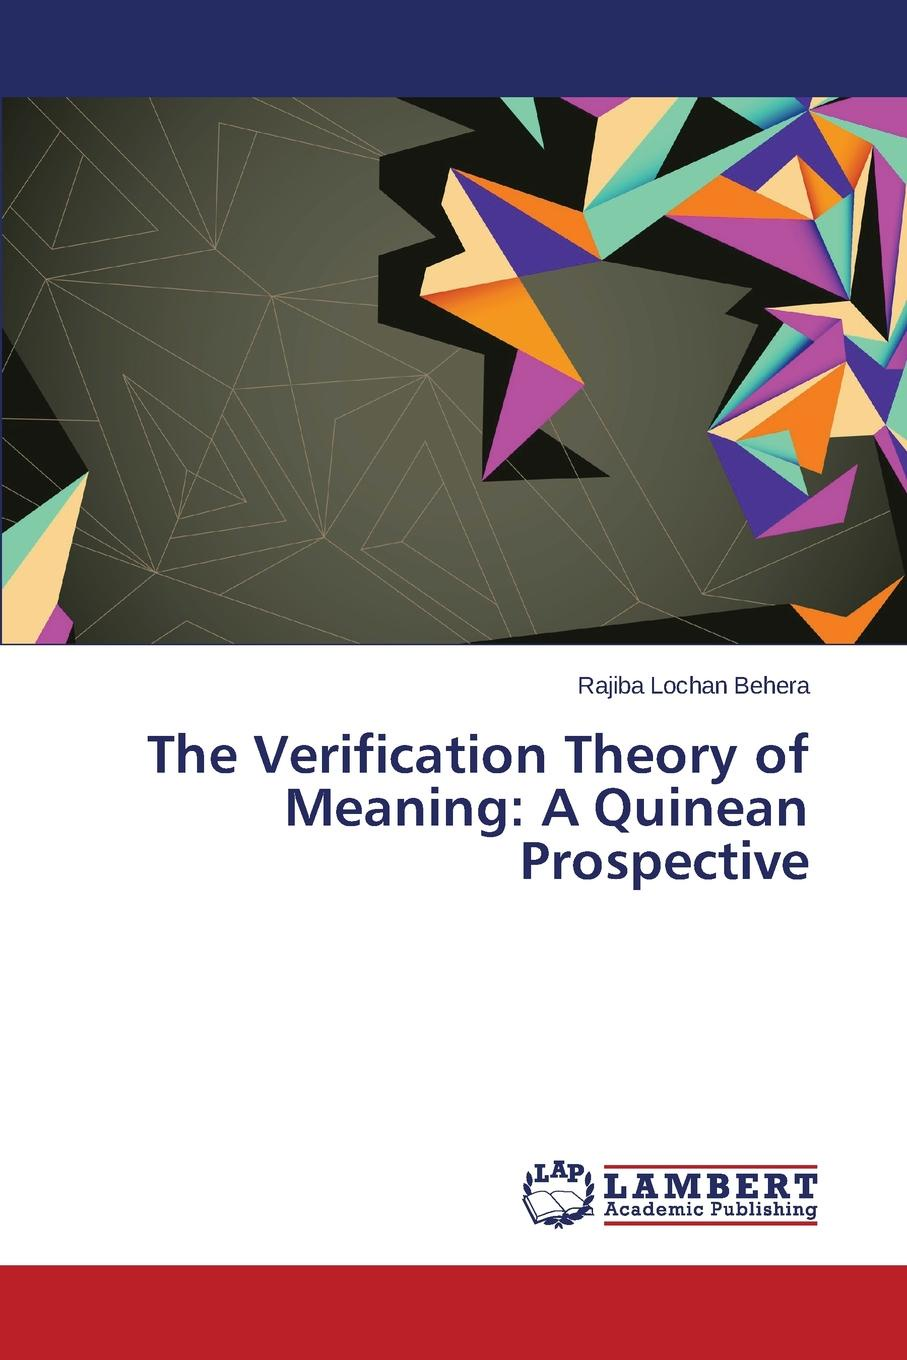 Behera Rajiba Lochan The Verification Theory of Meaning. A Quinean Prospective costas christodoulides the special theory of relativity foundations theory verification applications